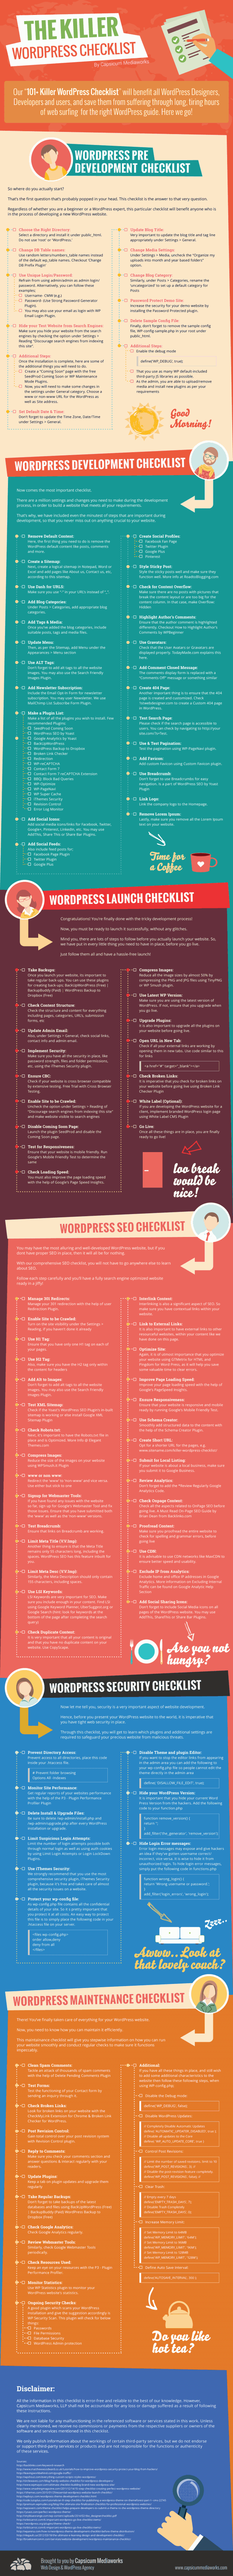 Wordpress Checklist